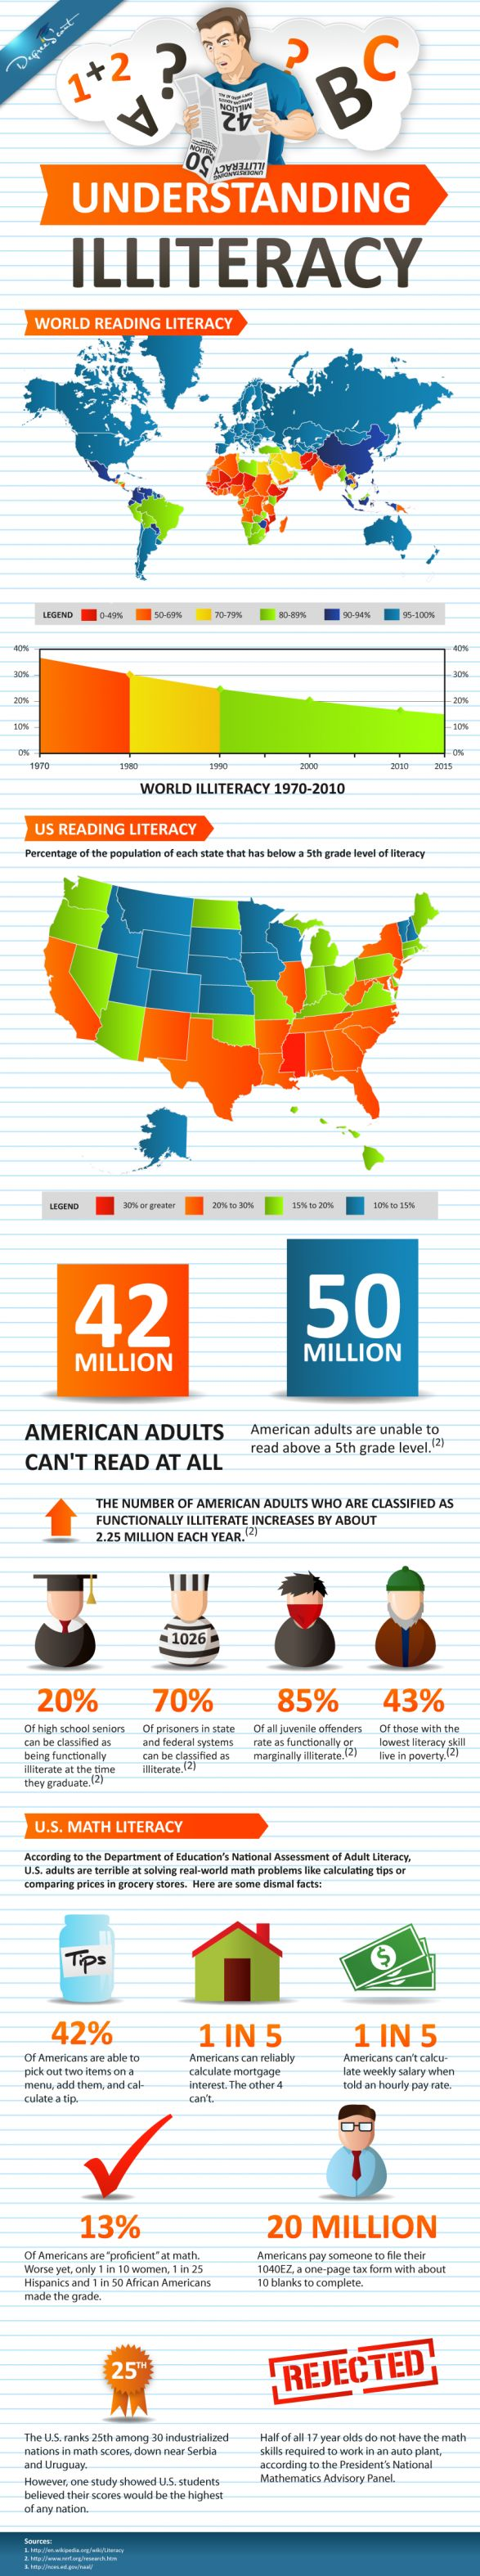 Understanding Illiteracy This is why we need libraries!